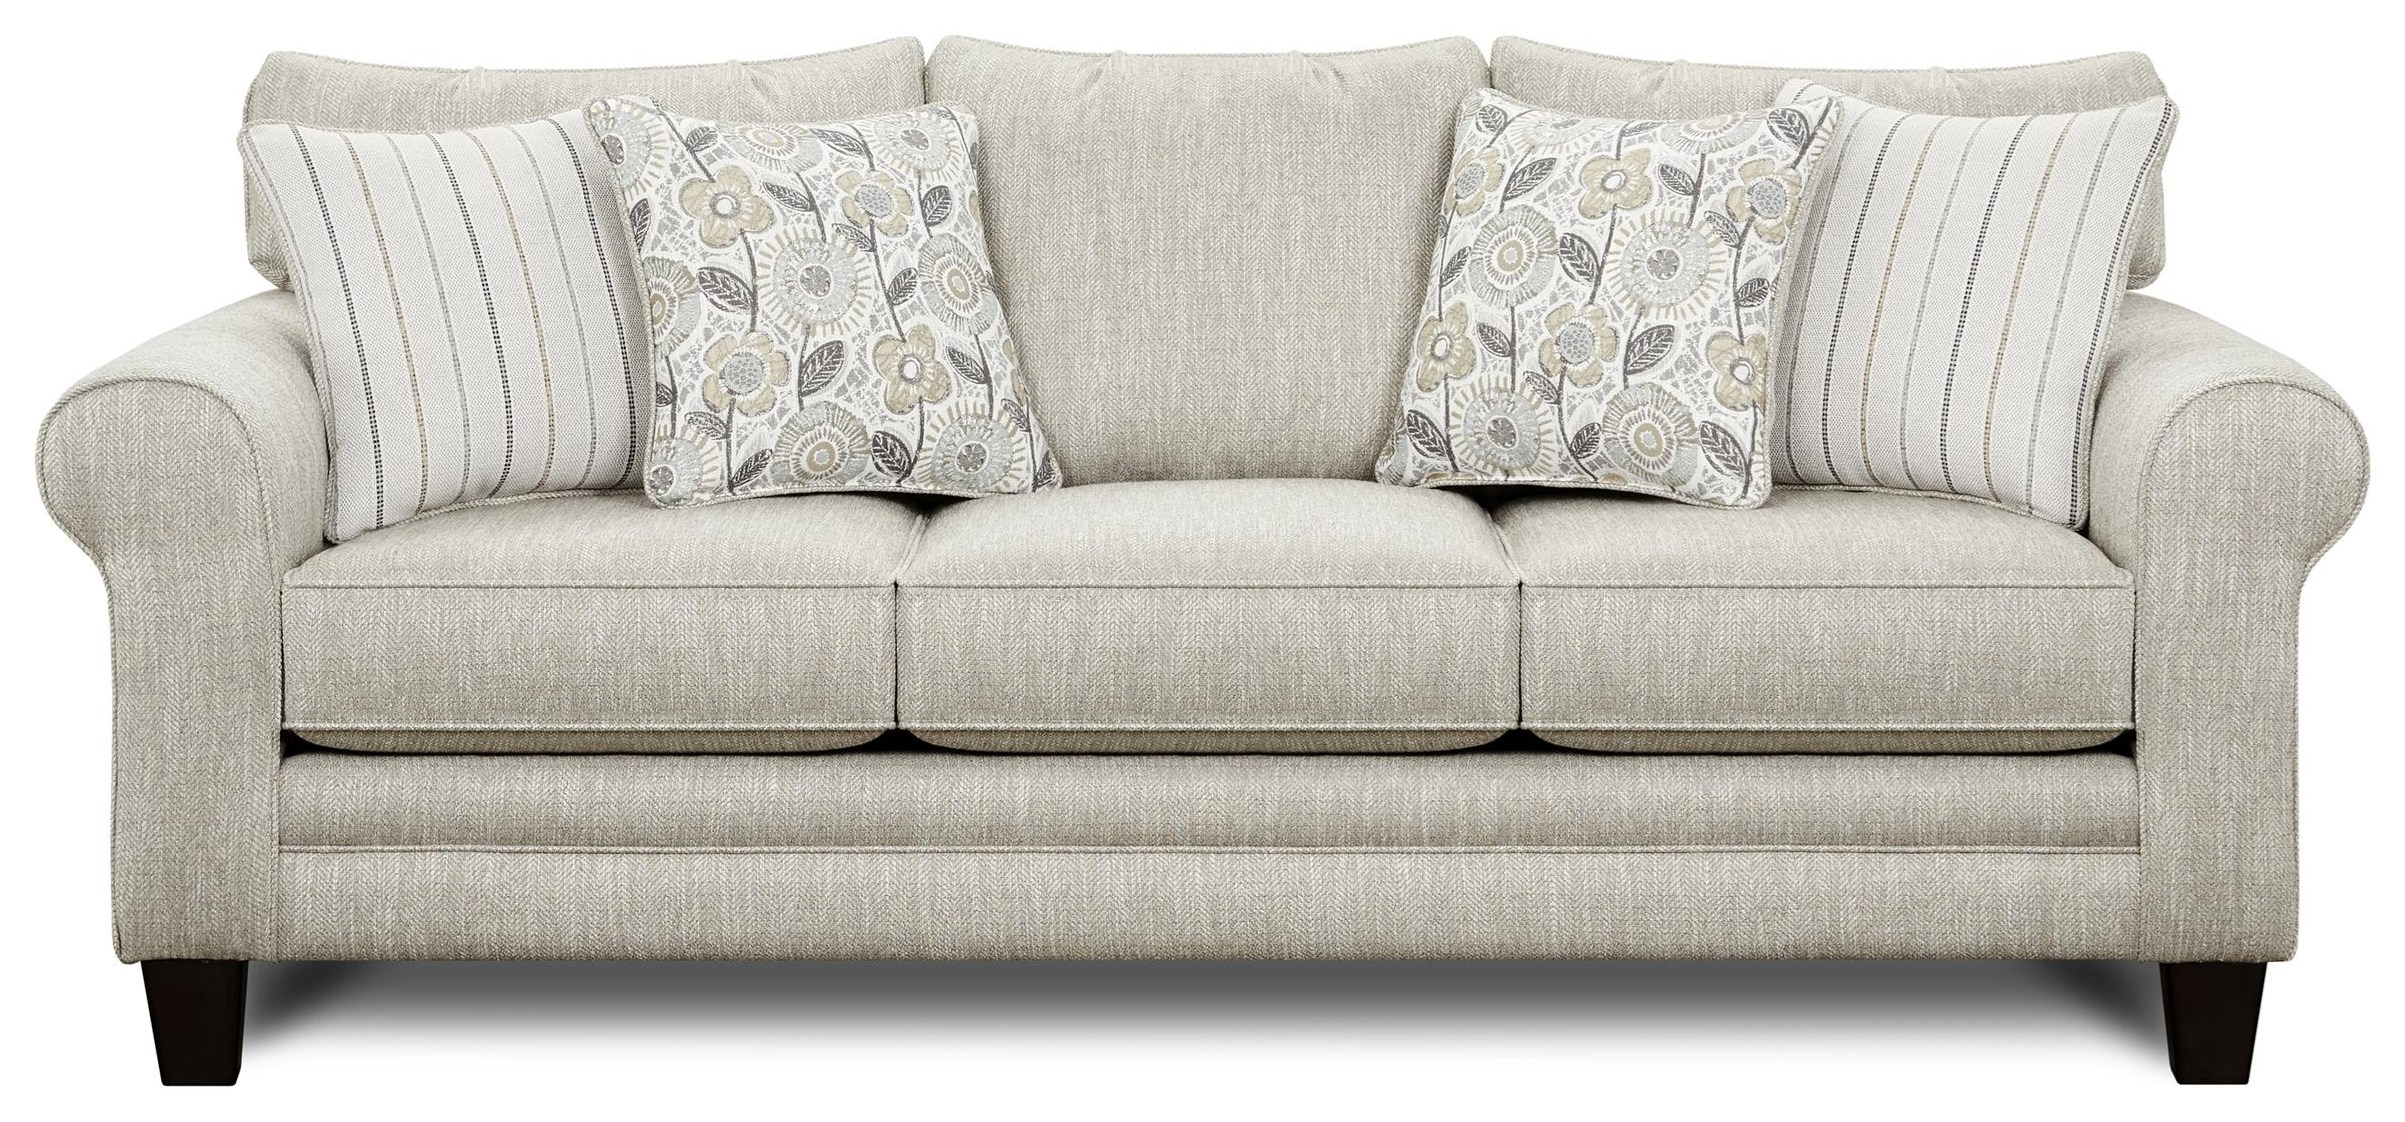 1140 Sofa w/ Accent Pillows by Kent Home Furnishings at Johnny Janosik